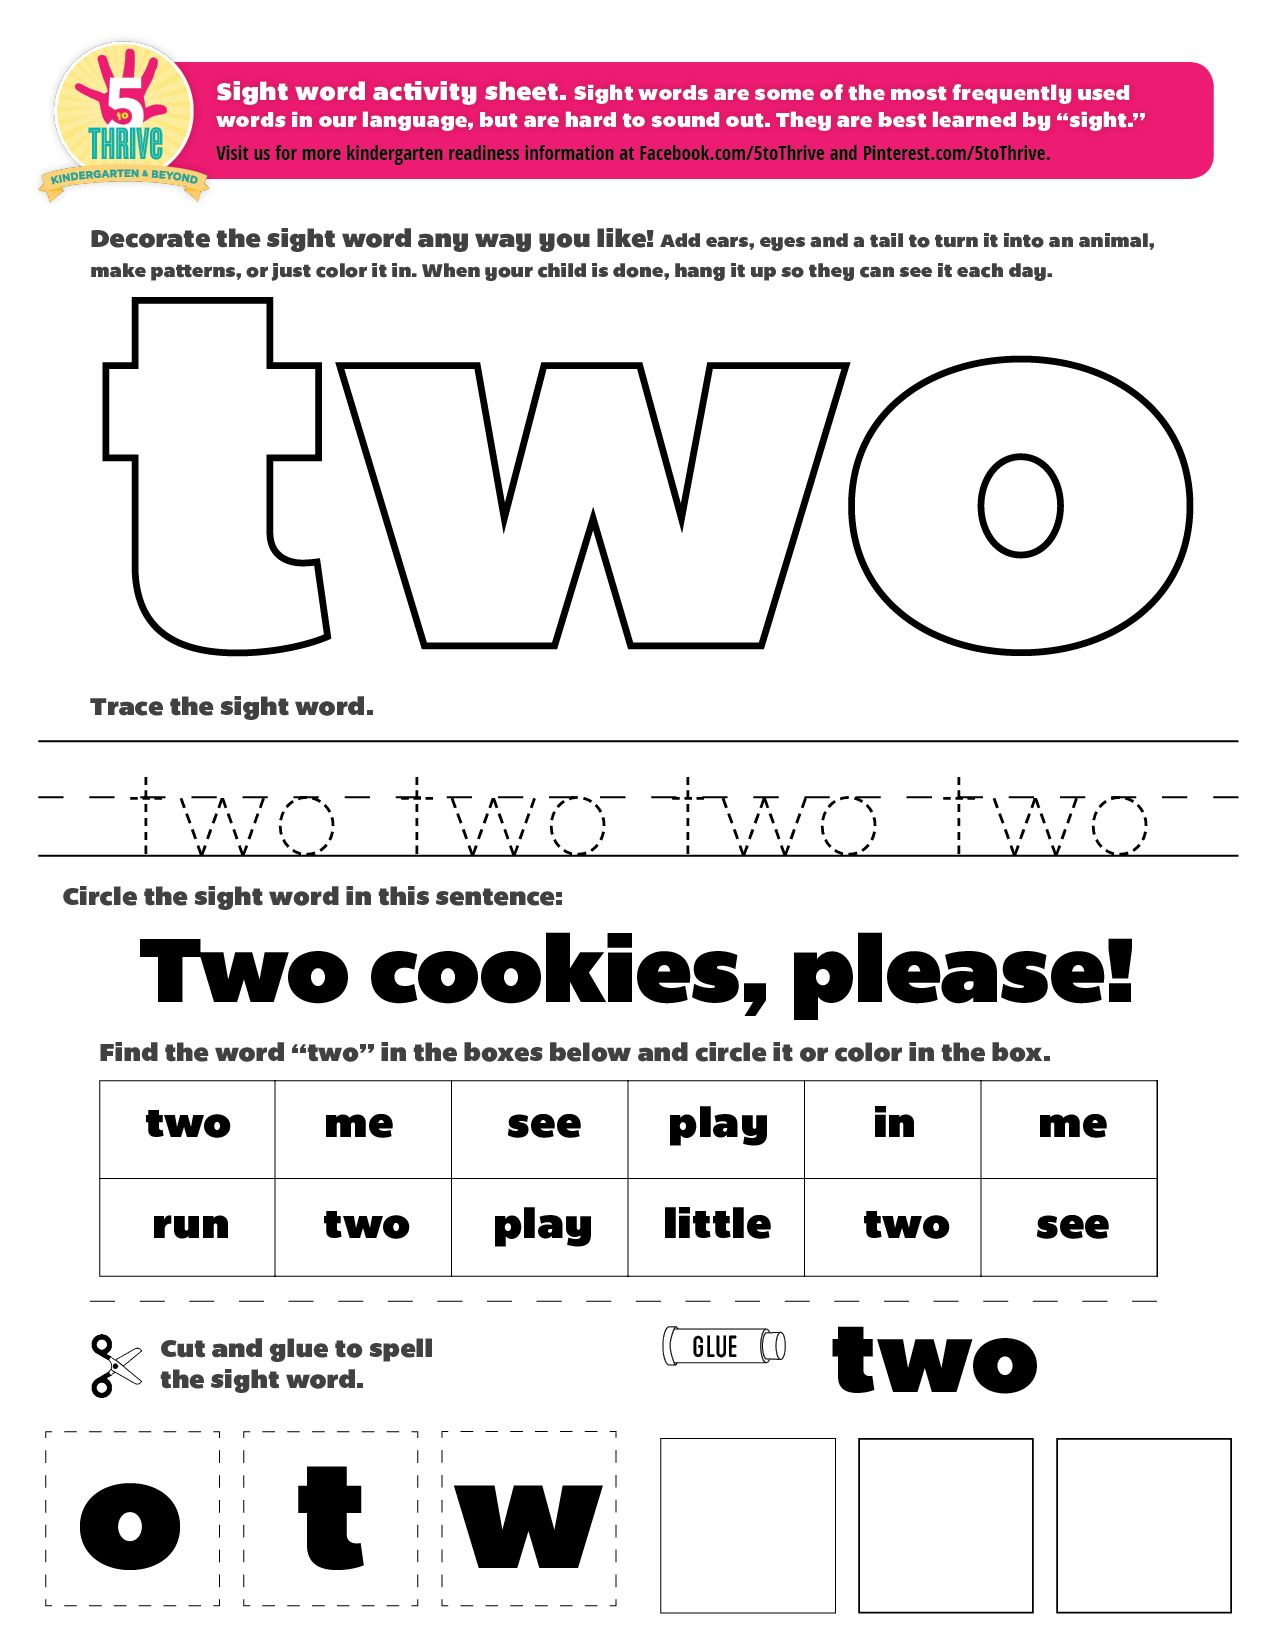 The Sight Word This Week Is Two Sight Words Are Some Of The Most Frequently Used Words Kindergarten Worksheets Sight Words Sight Word Worksheets Sight Words